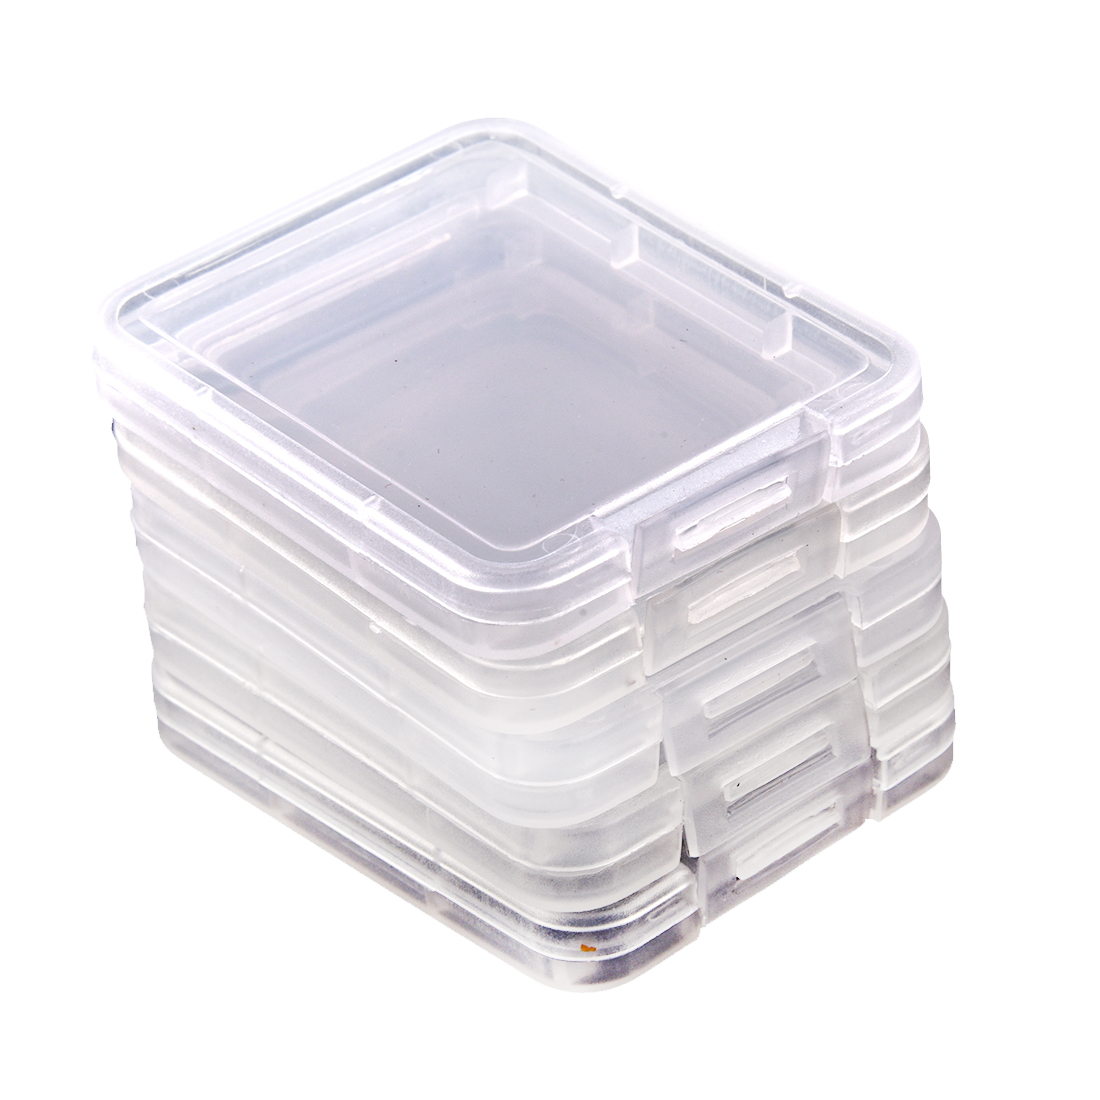 YOC  5 Series Memory Card Case Box Protective Case For SD SDHC MMC XD CF Card White Transparent